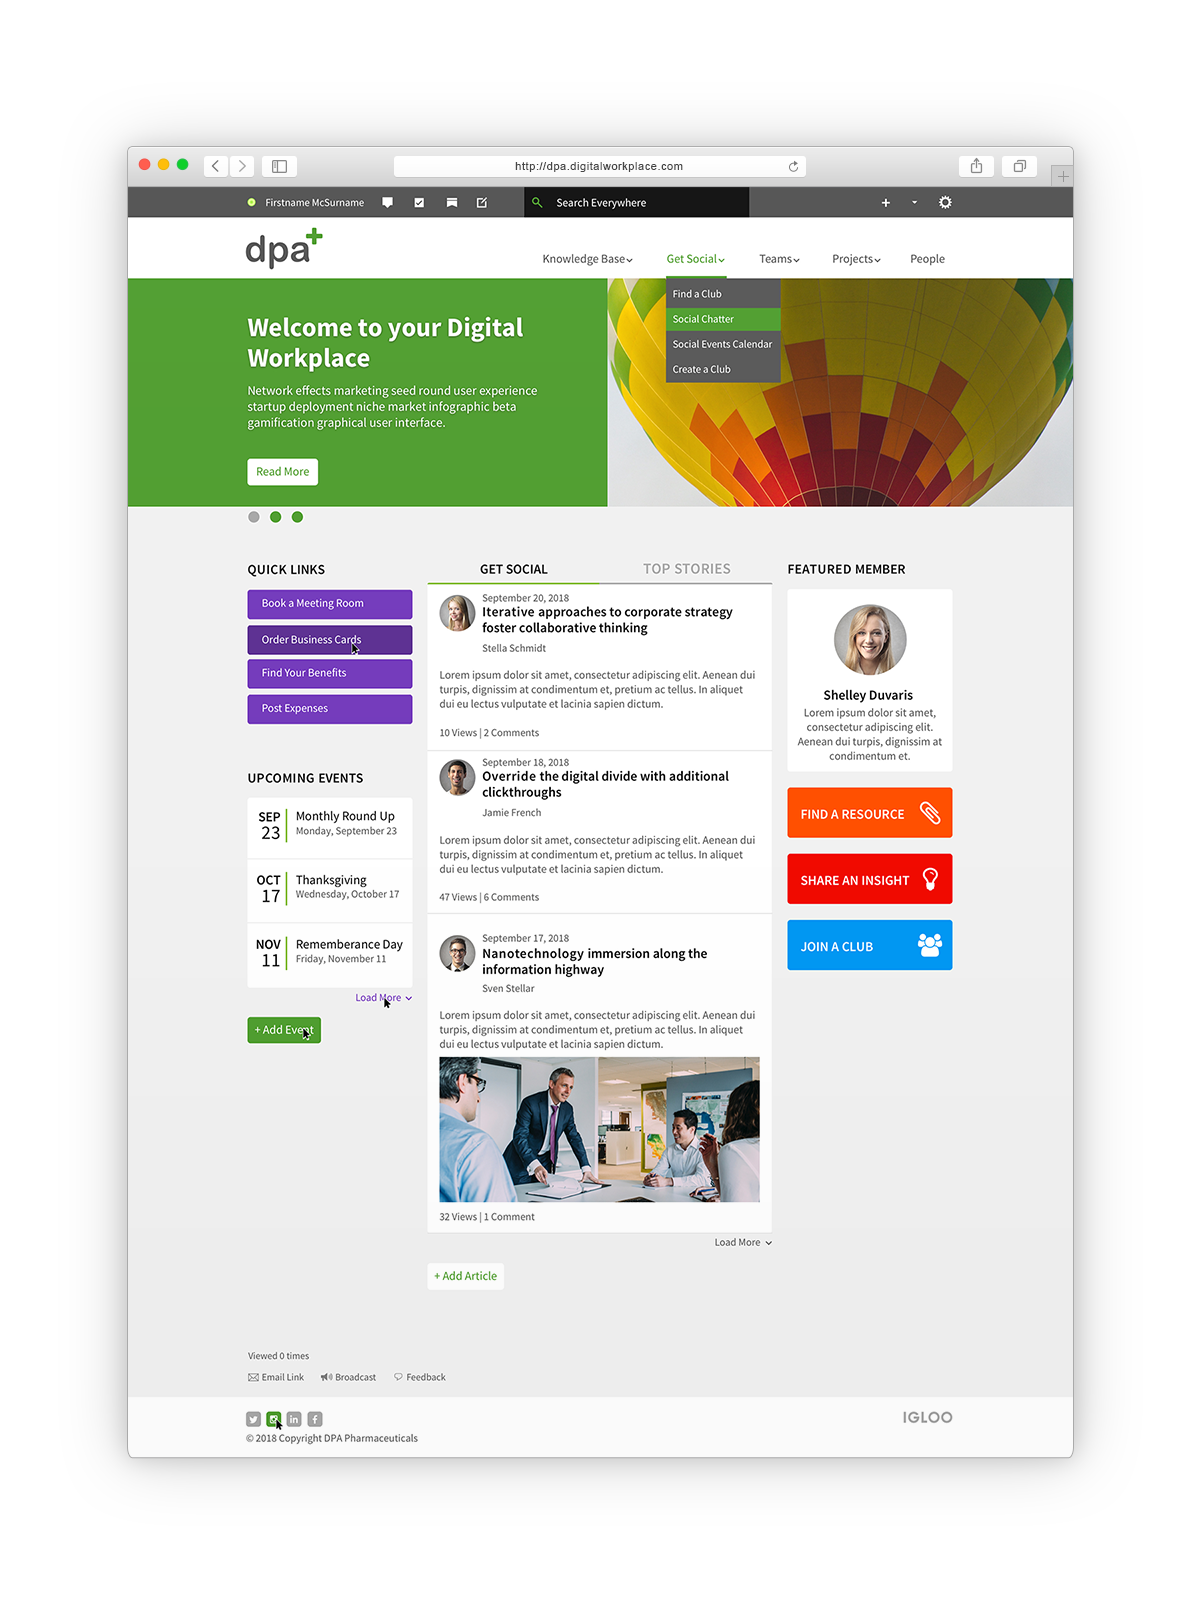 Pharmaceutical Association Digital Workplace Mockup